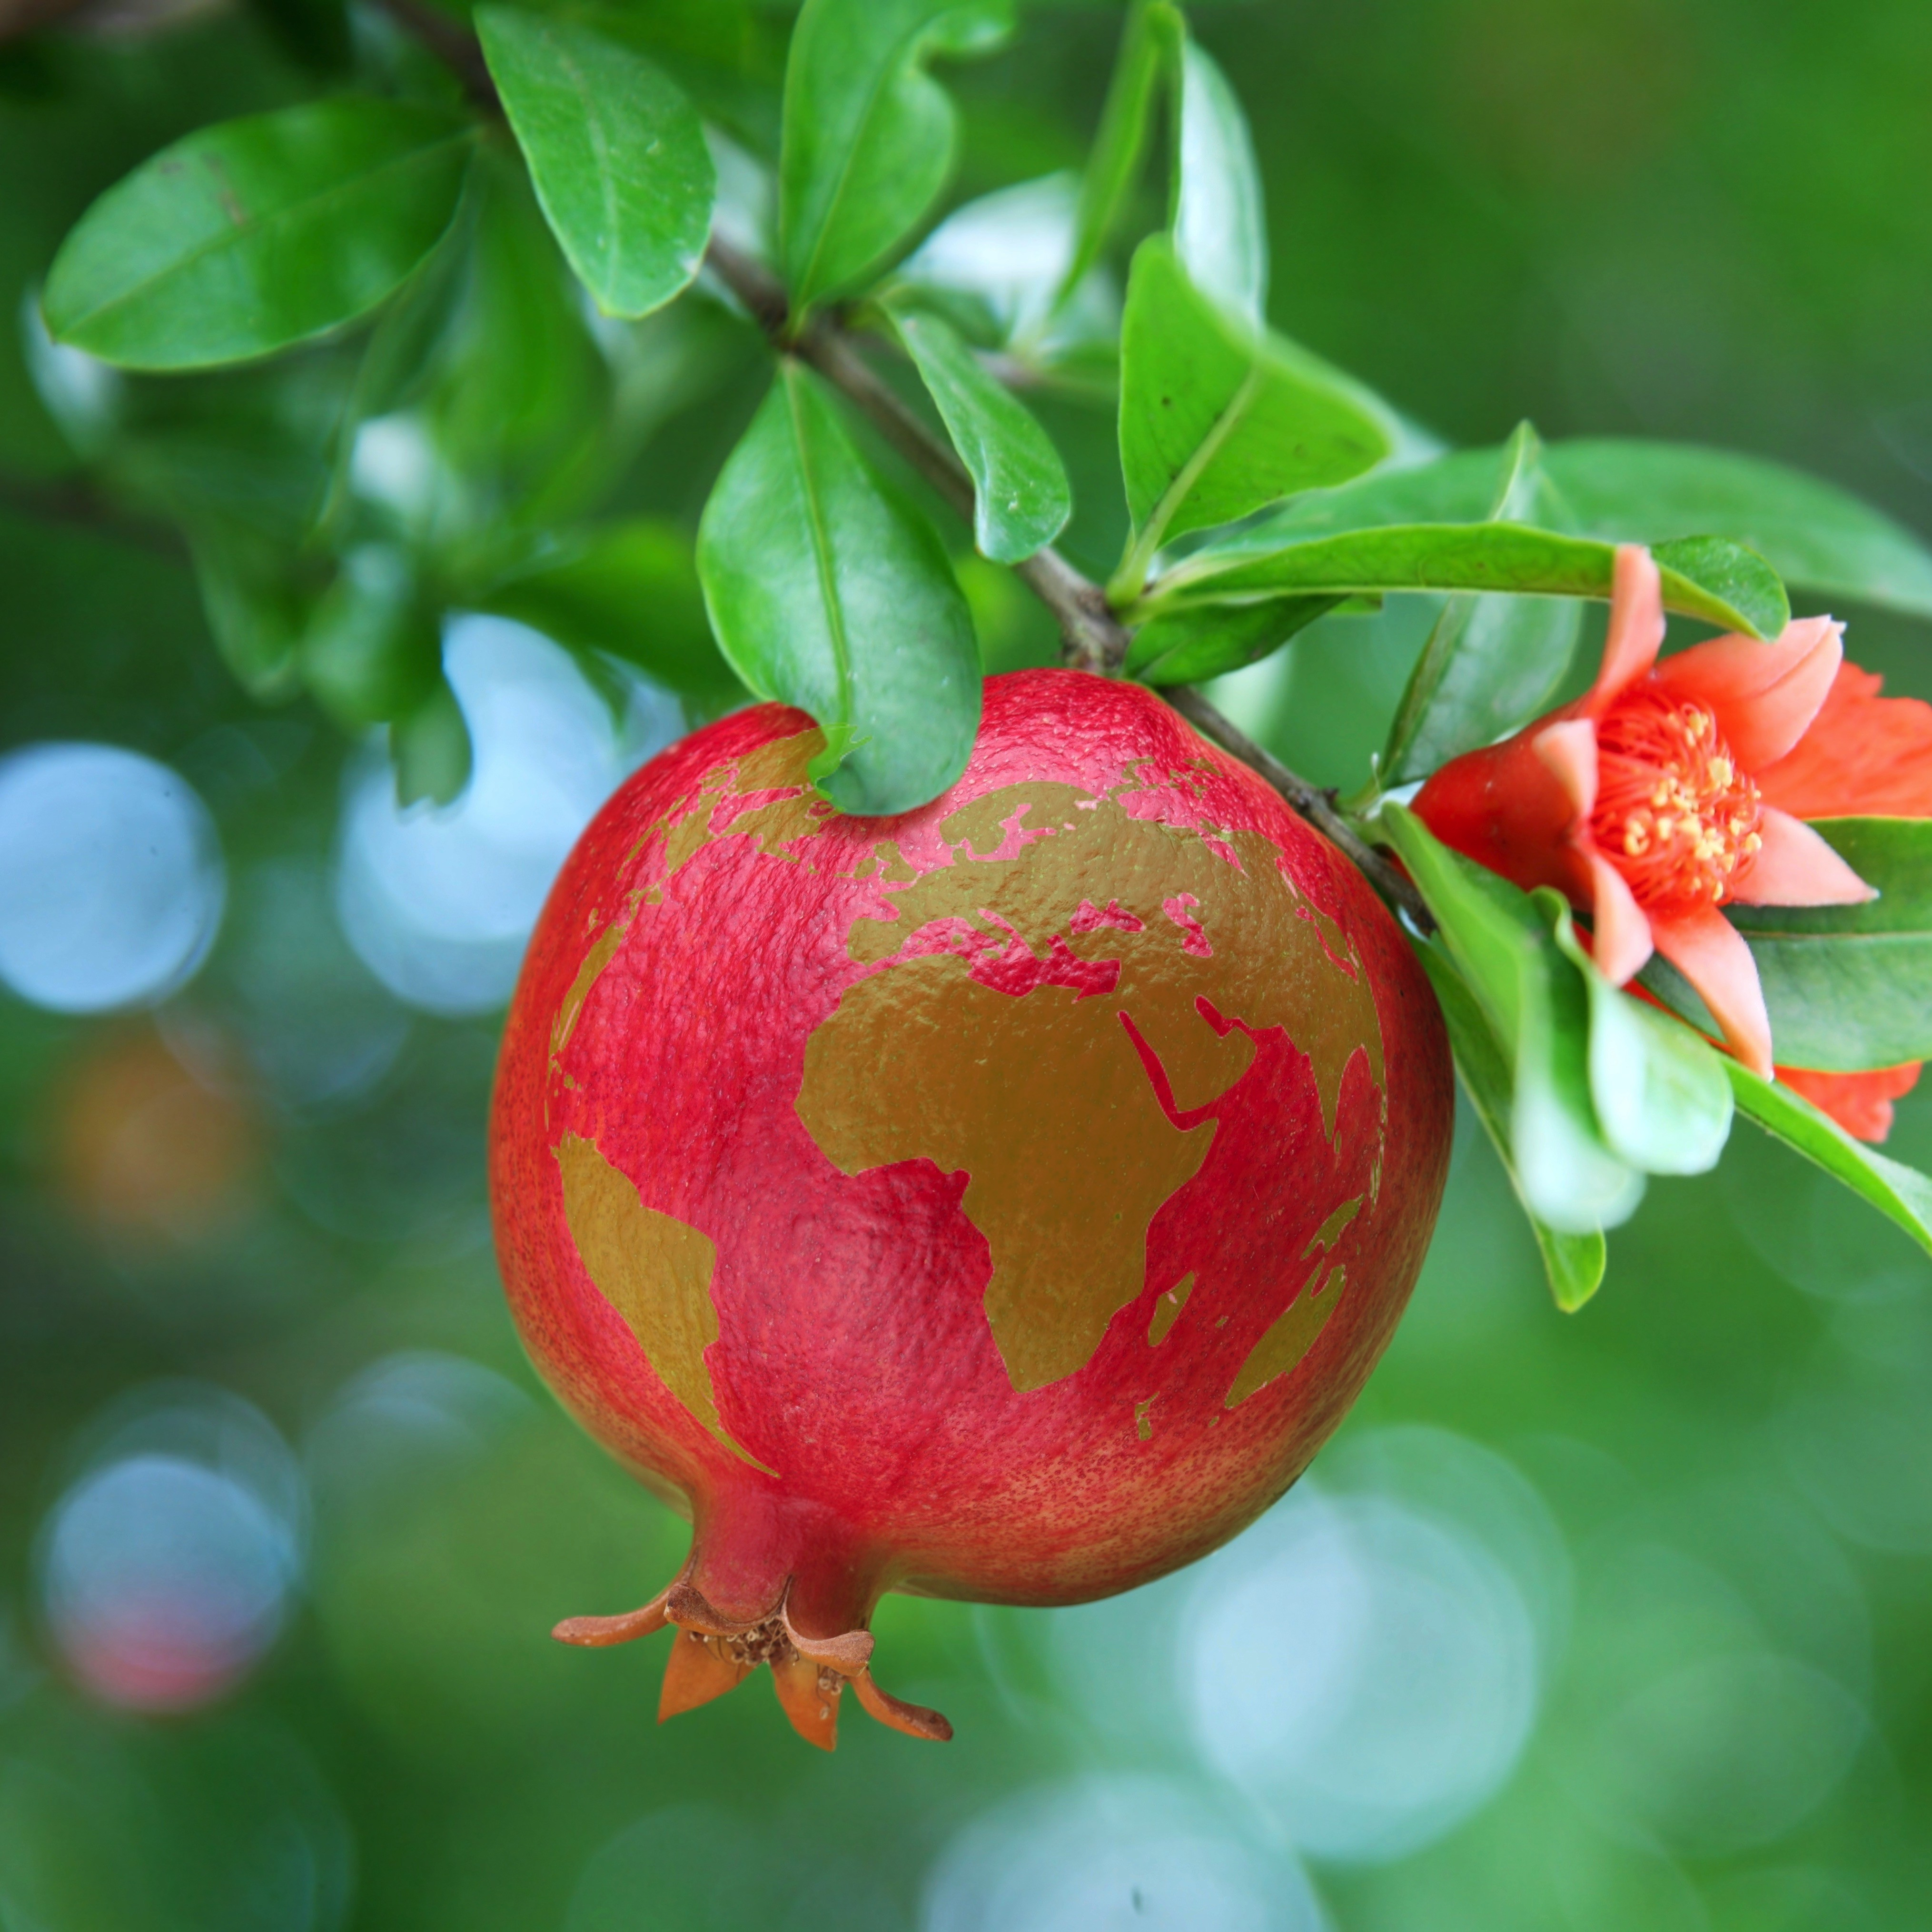 Sustainable agriculture: Amigra chooses only organic pomegranate.